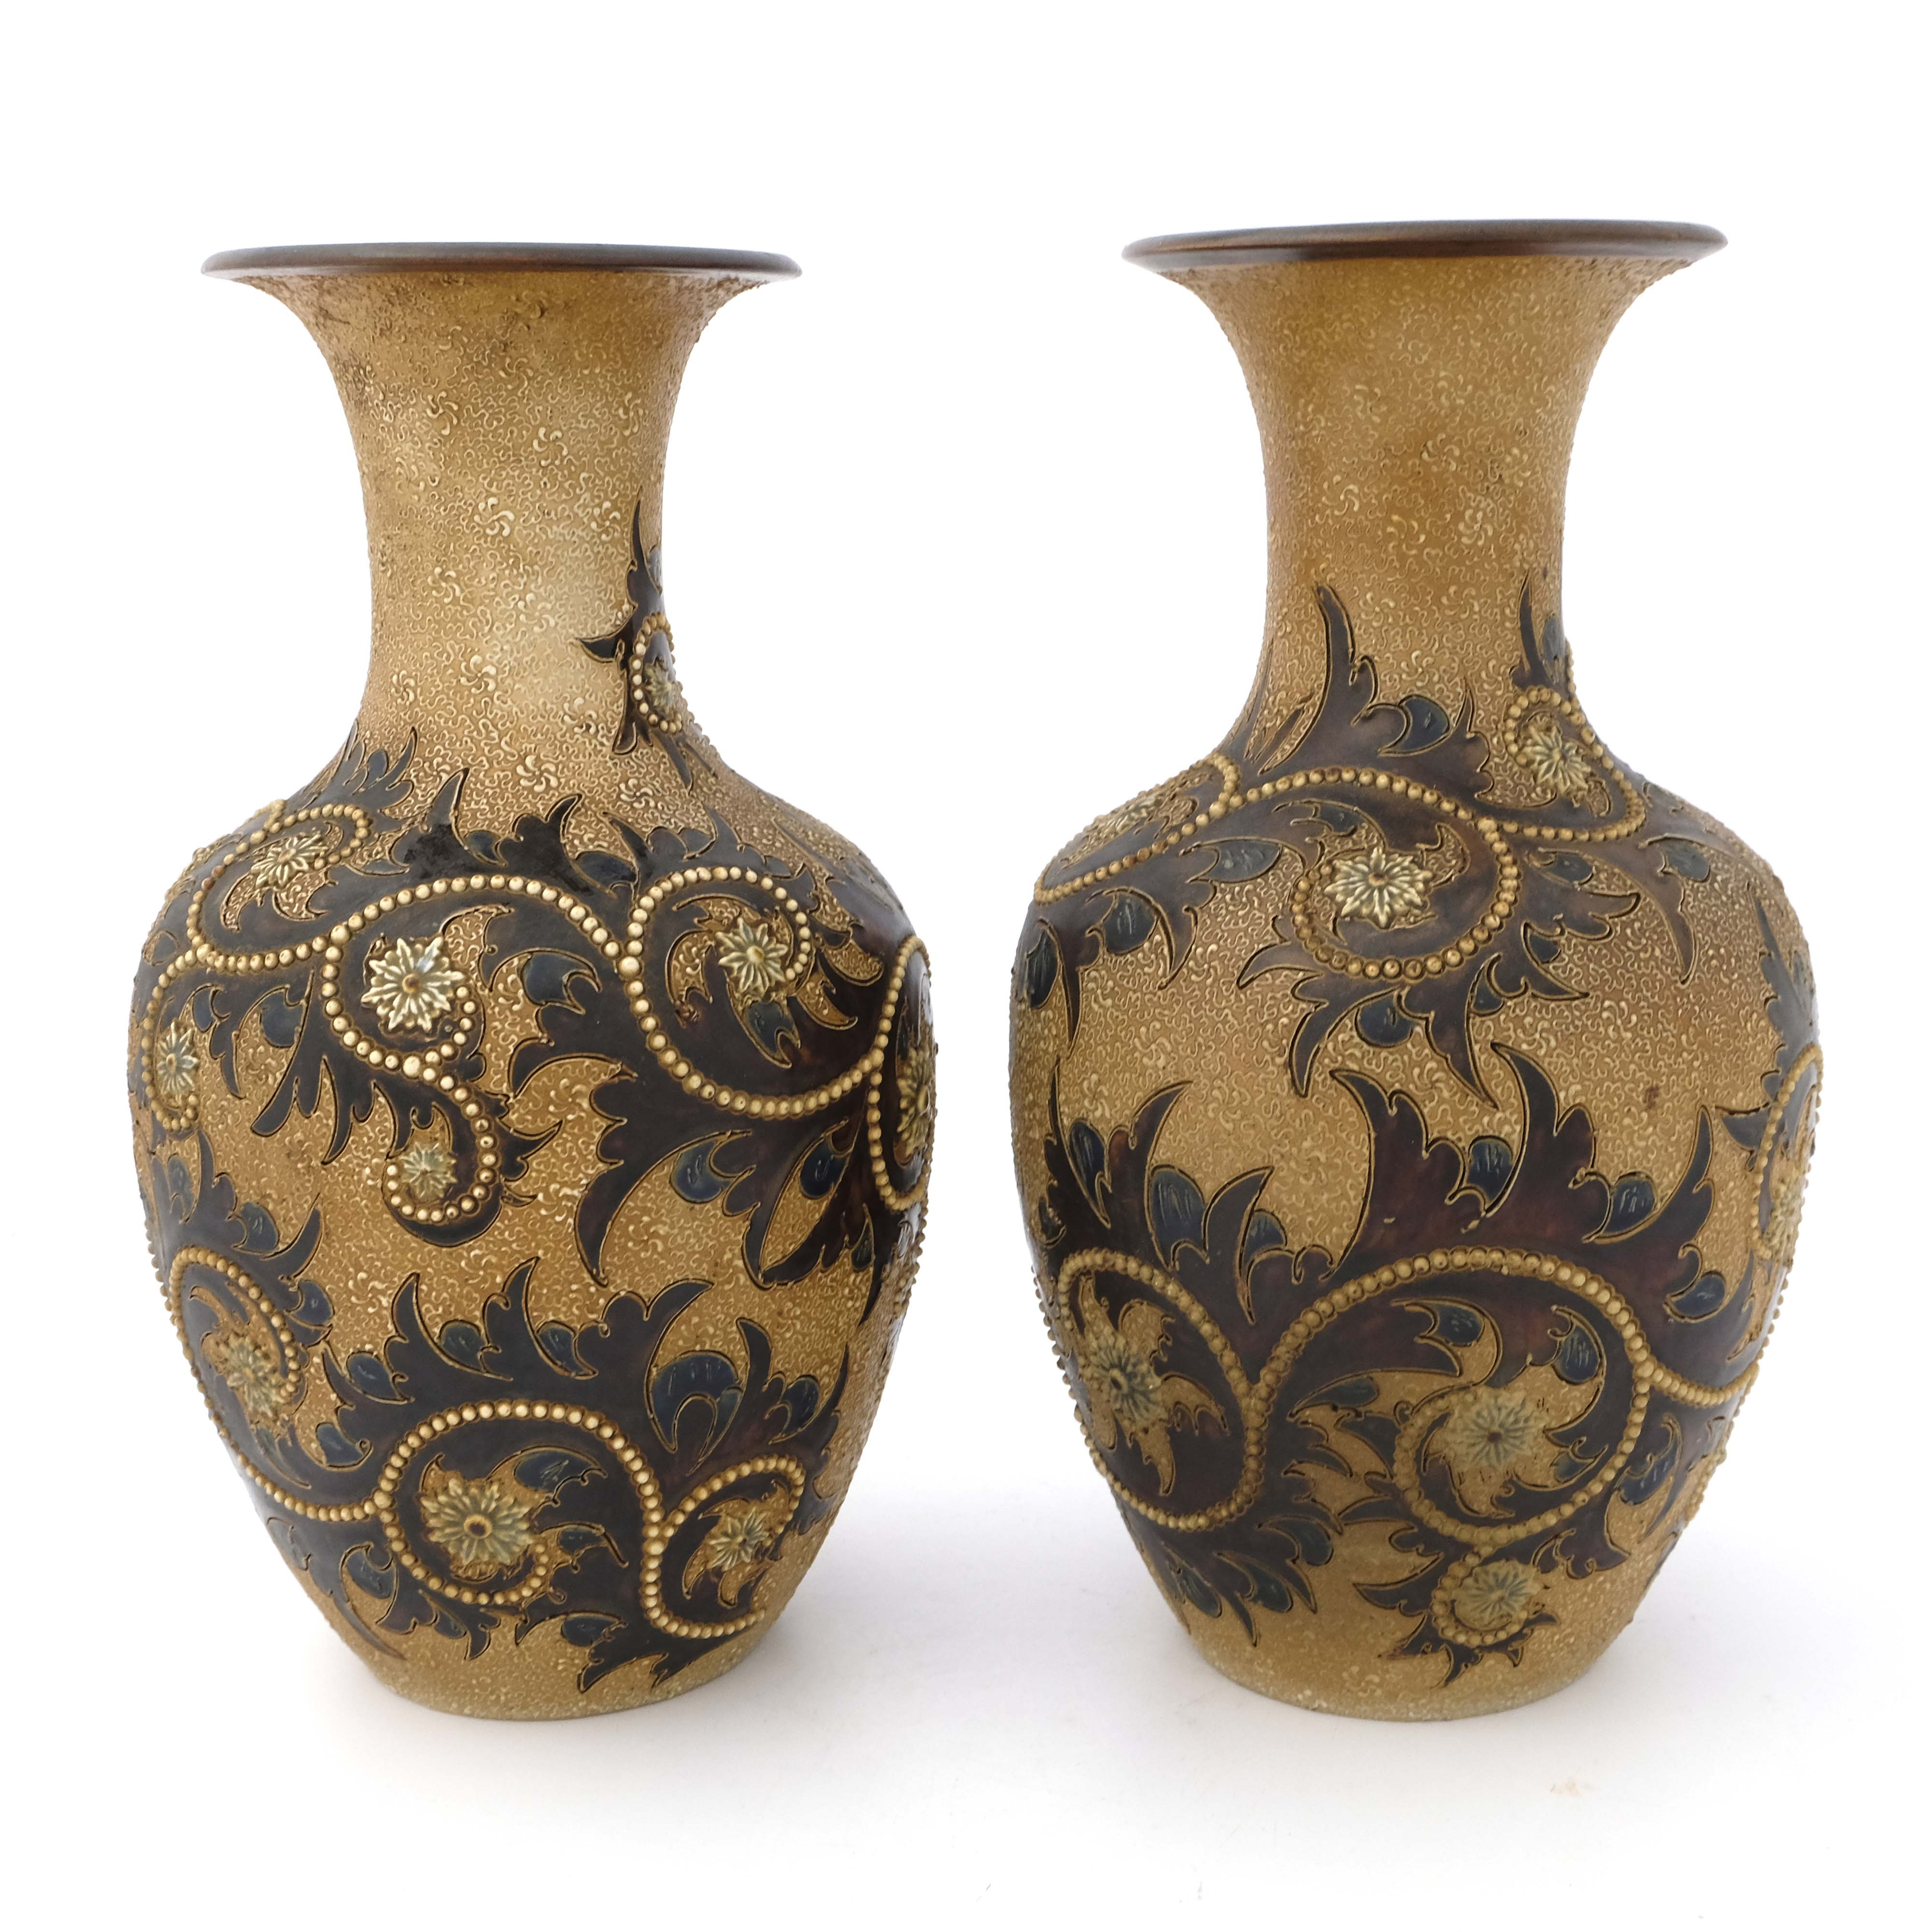 George Tinworth for Doulton Lambeth, a pair of sto - Image 3 of 7